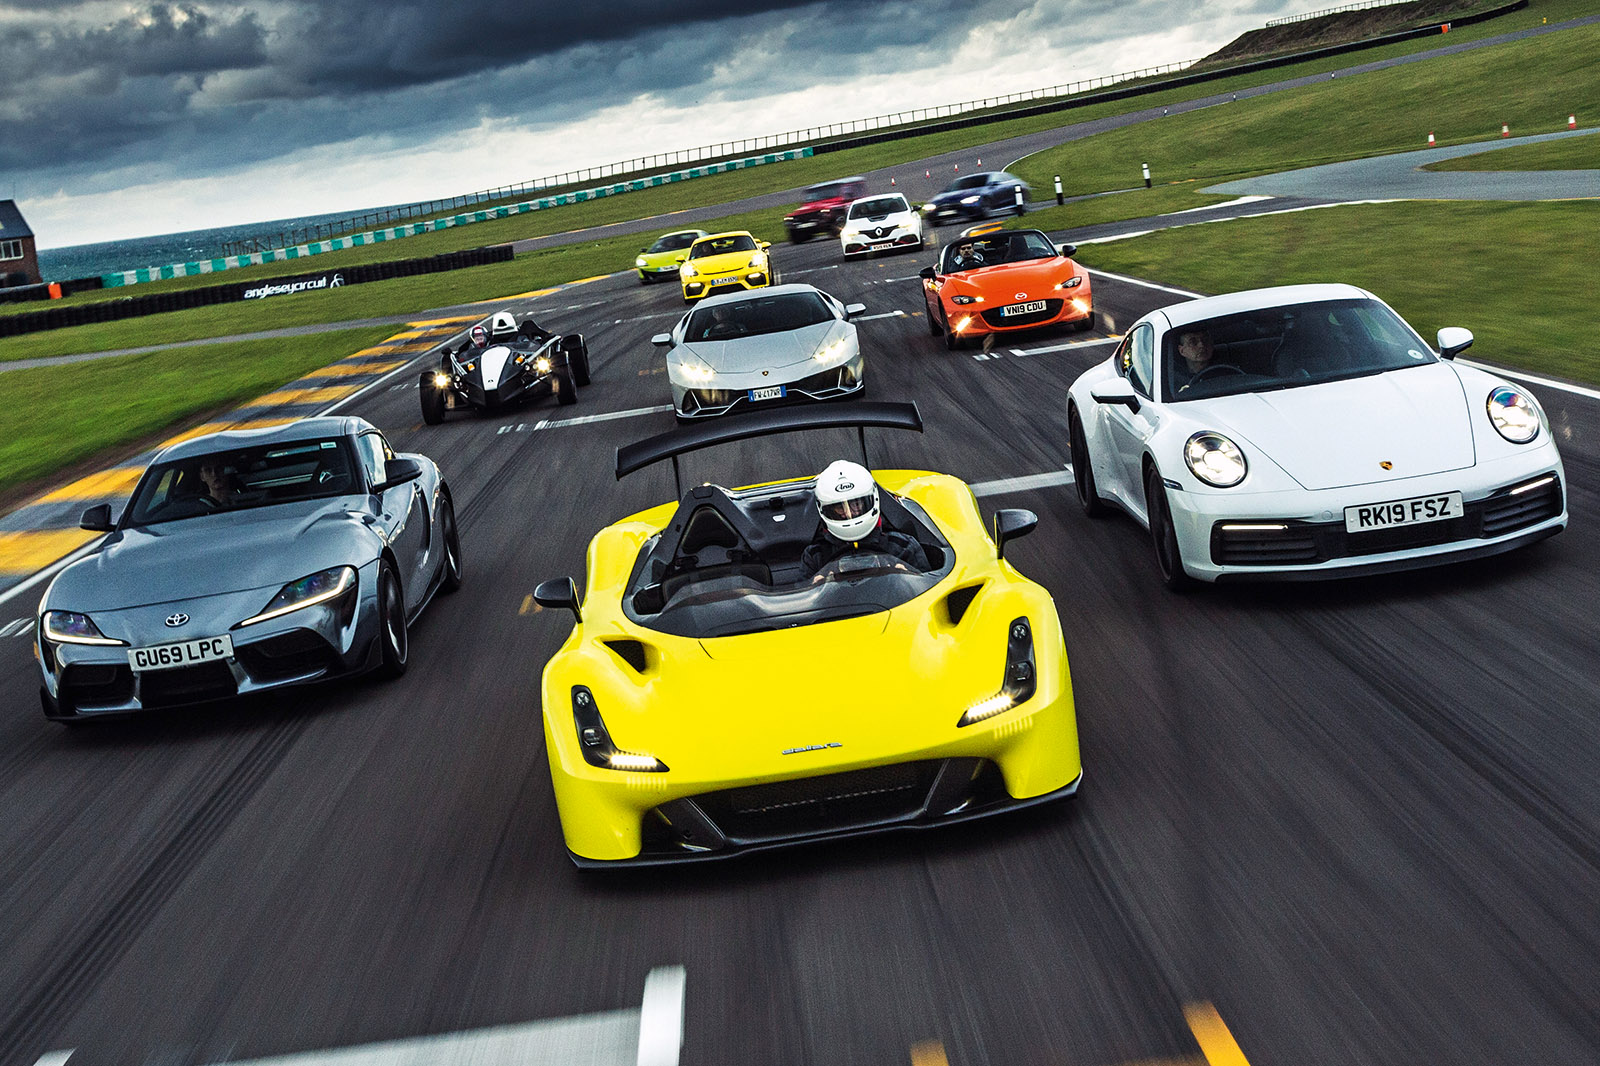 Britain's Best Driver's Car 2019: Meet the contenders